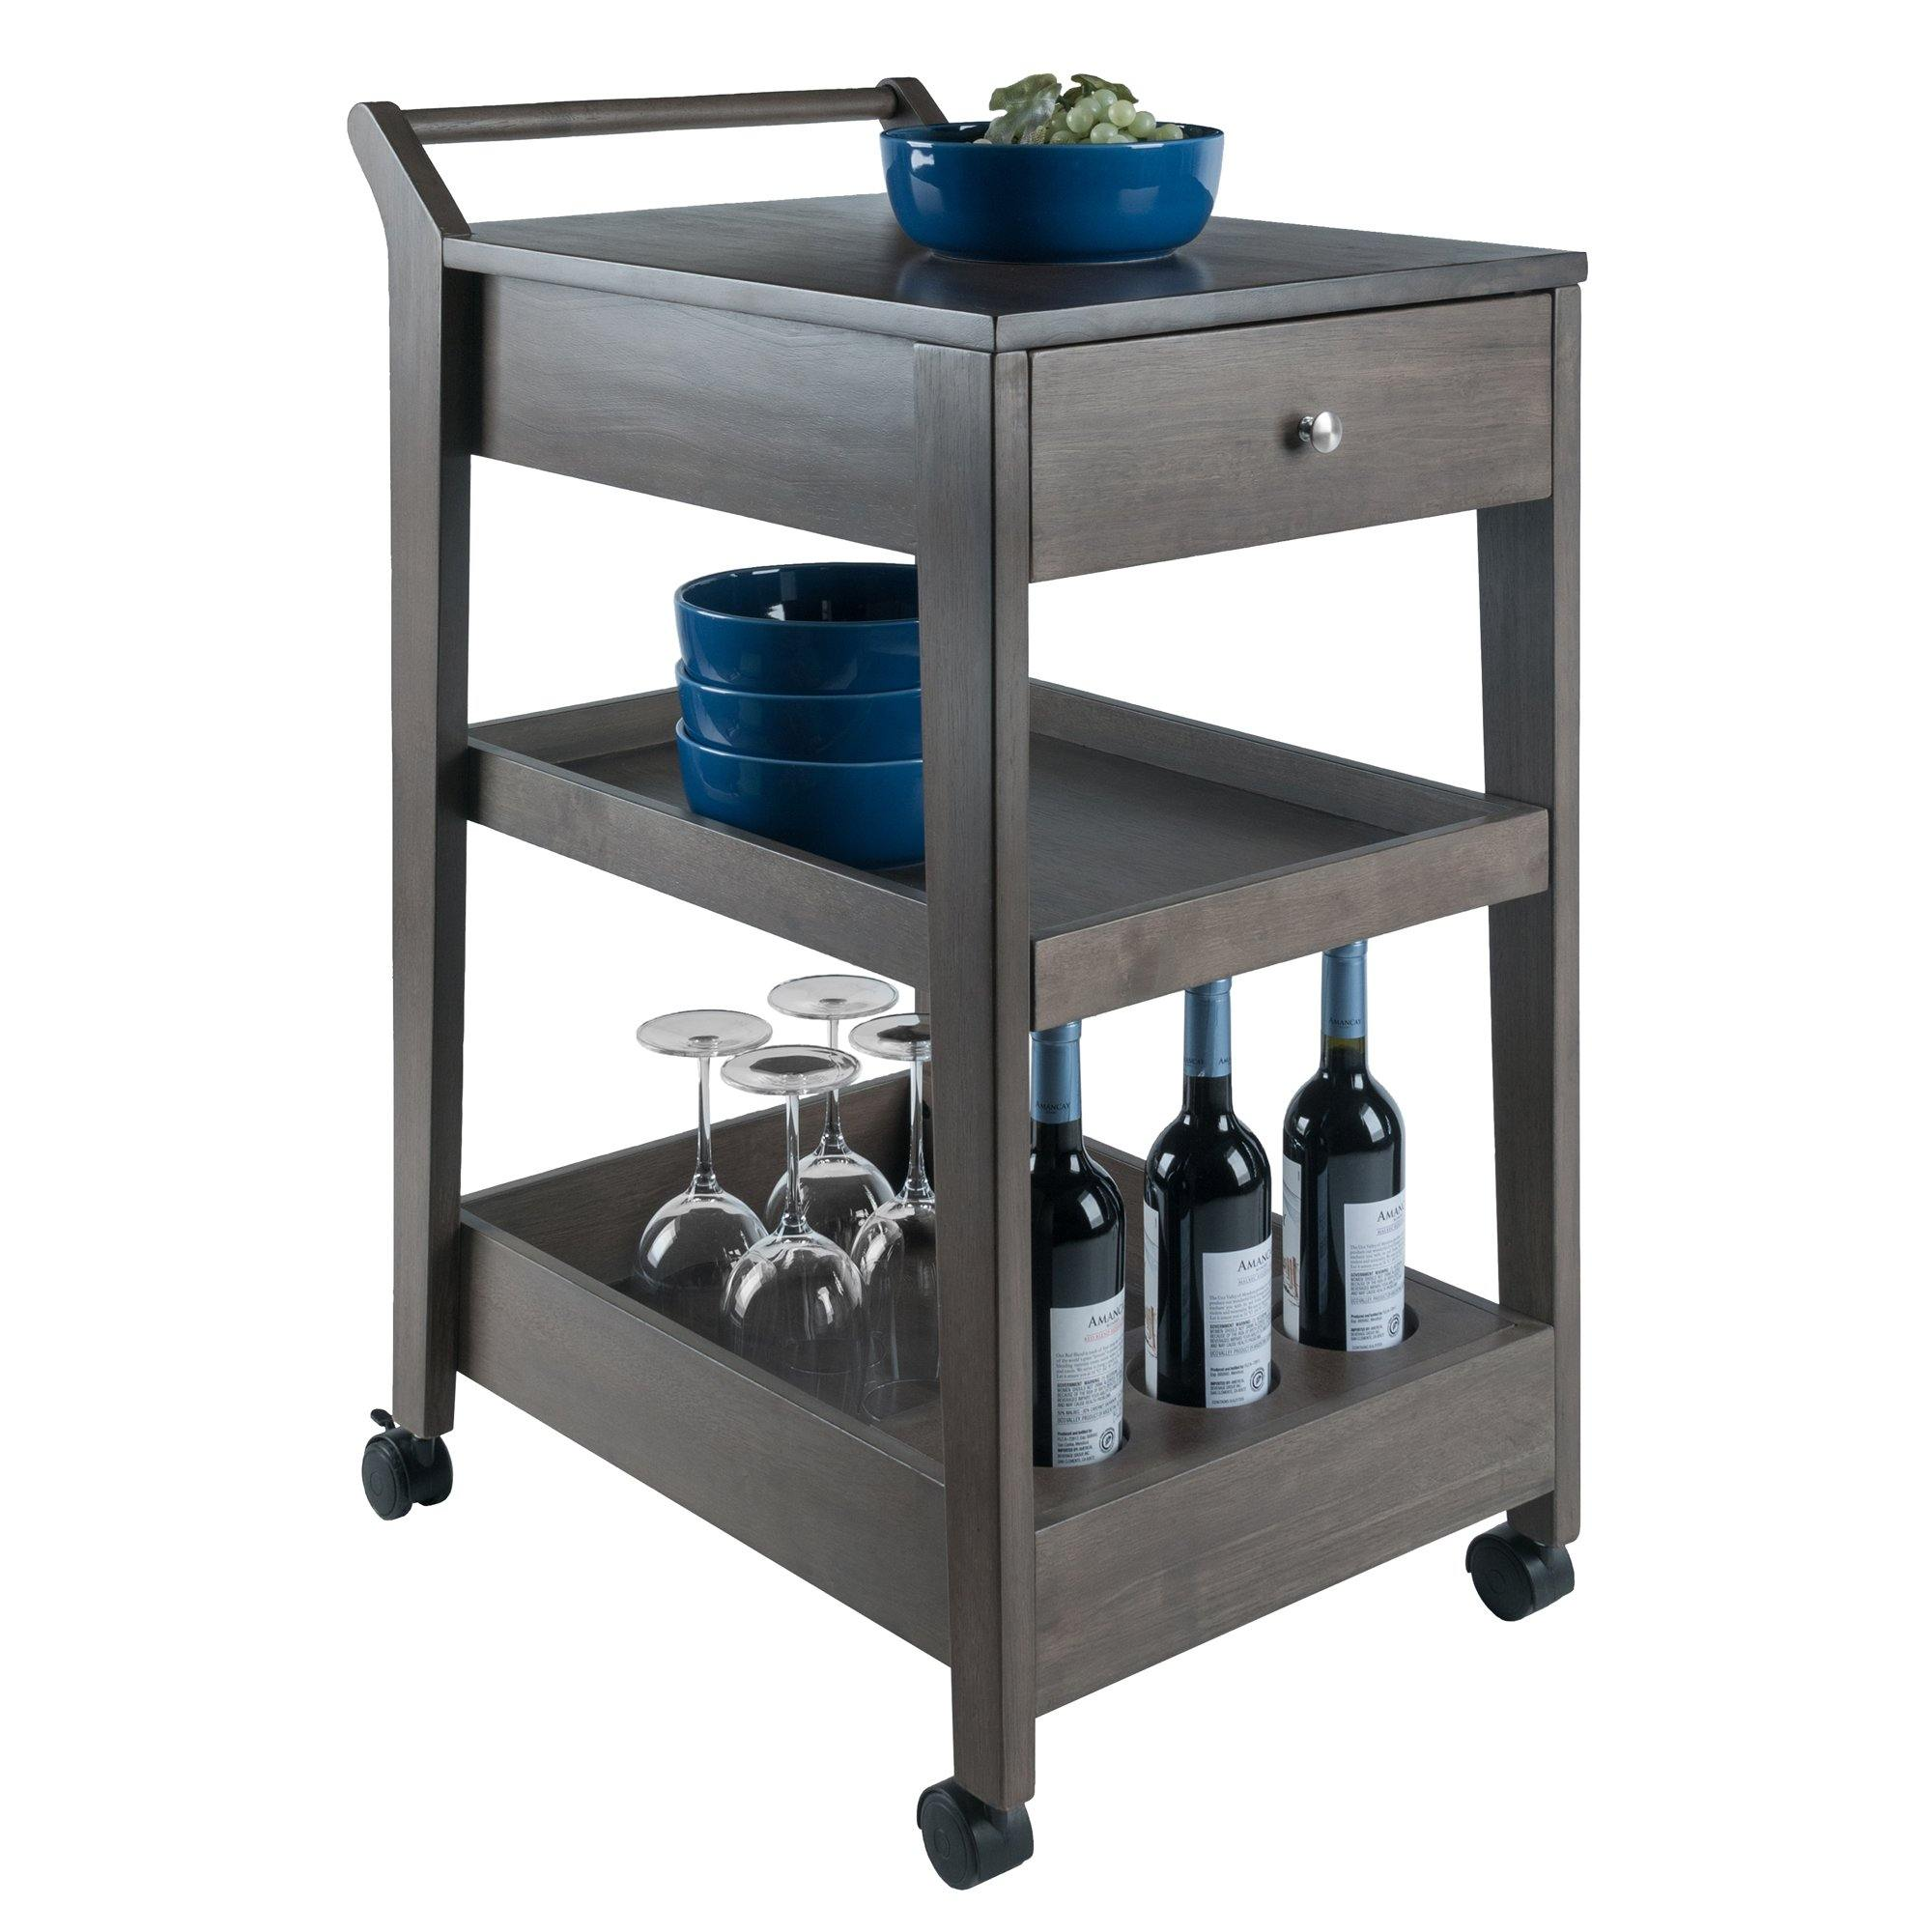 Jeston Entertainment Cart, Oyster Gray - My USA Furniture